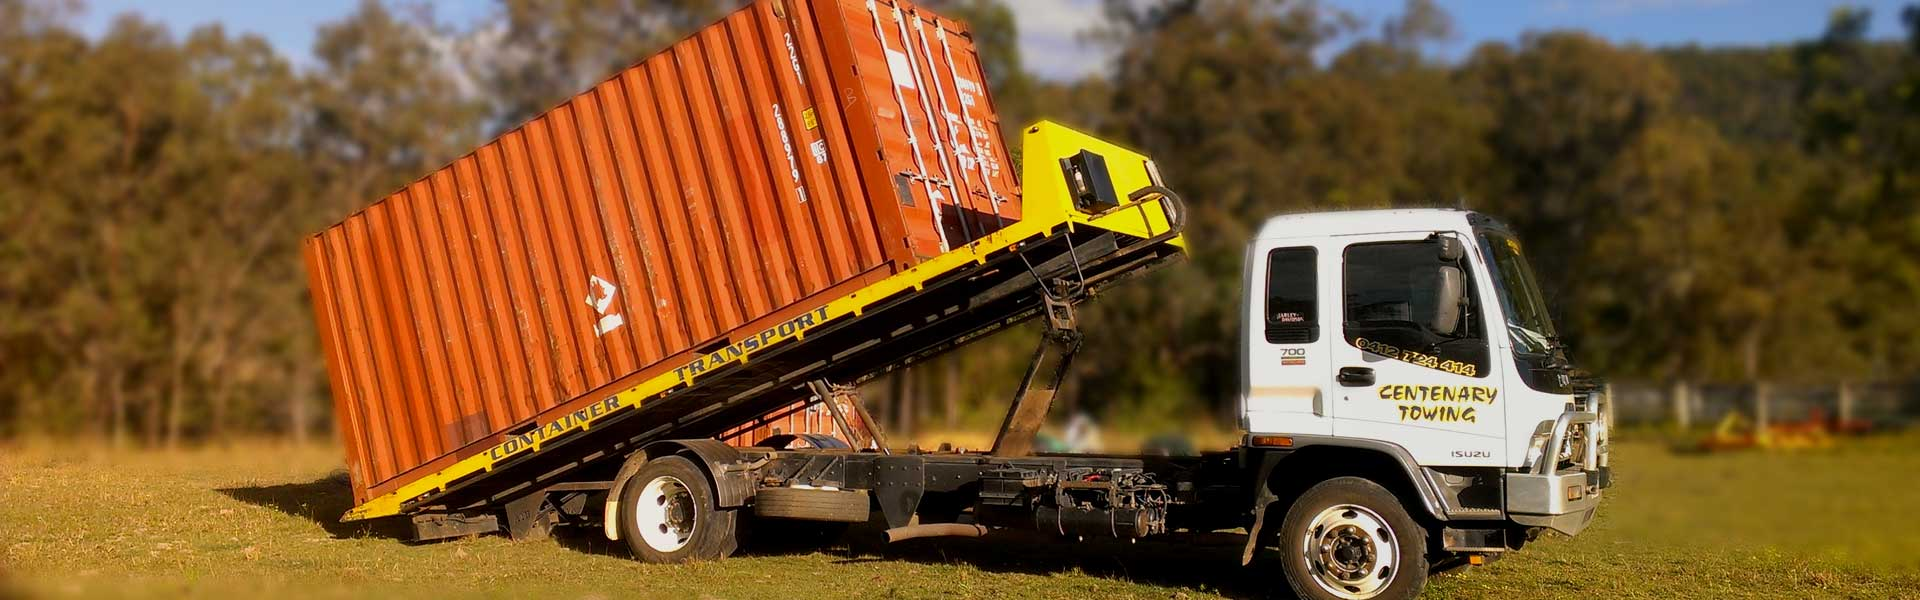 Brisbane Shipping Container Transport